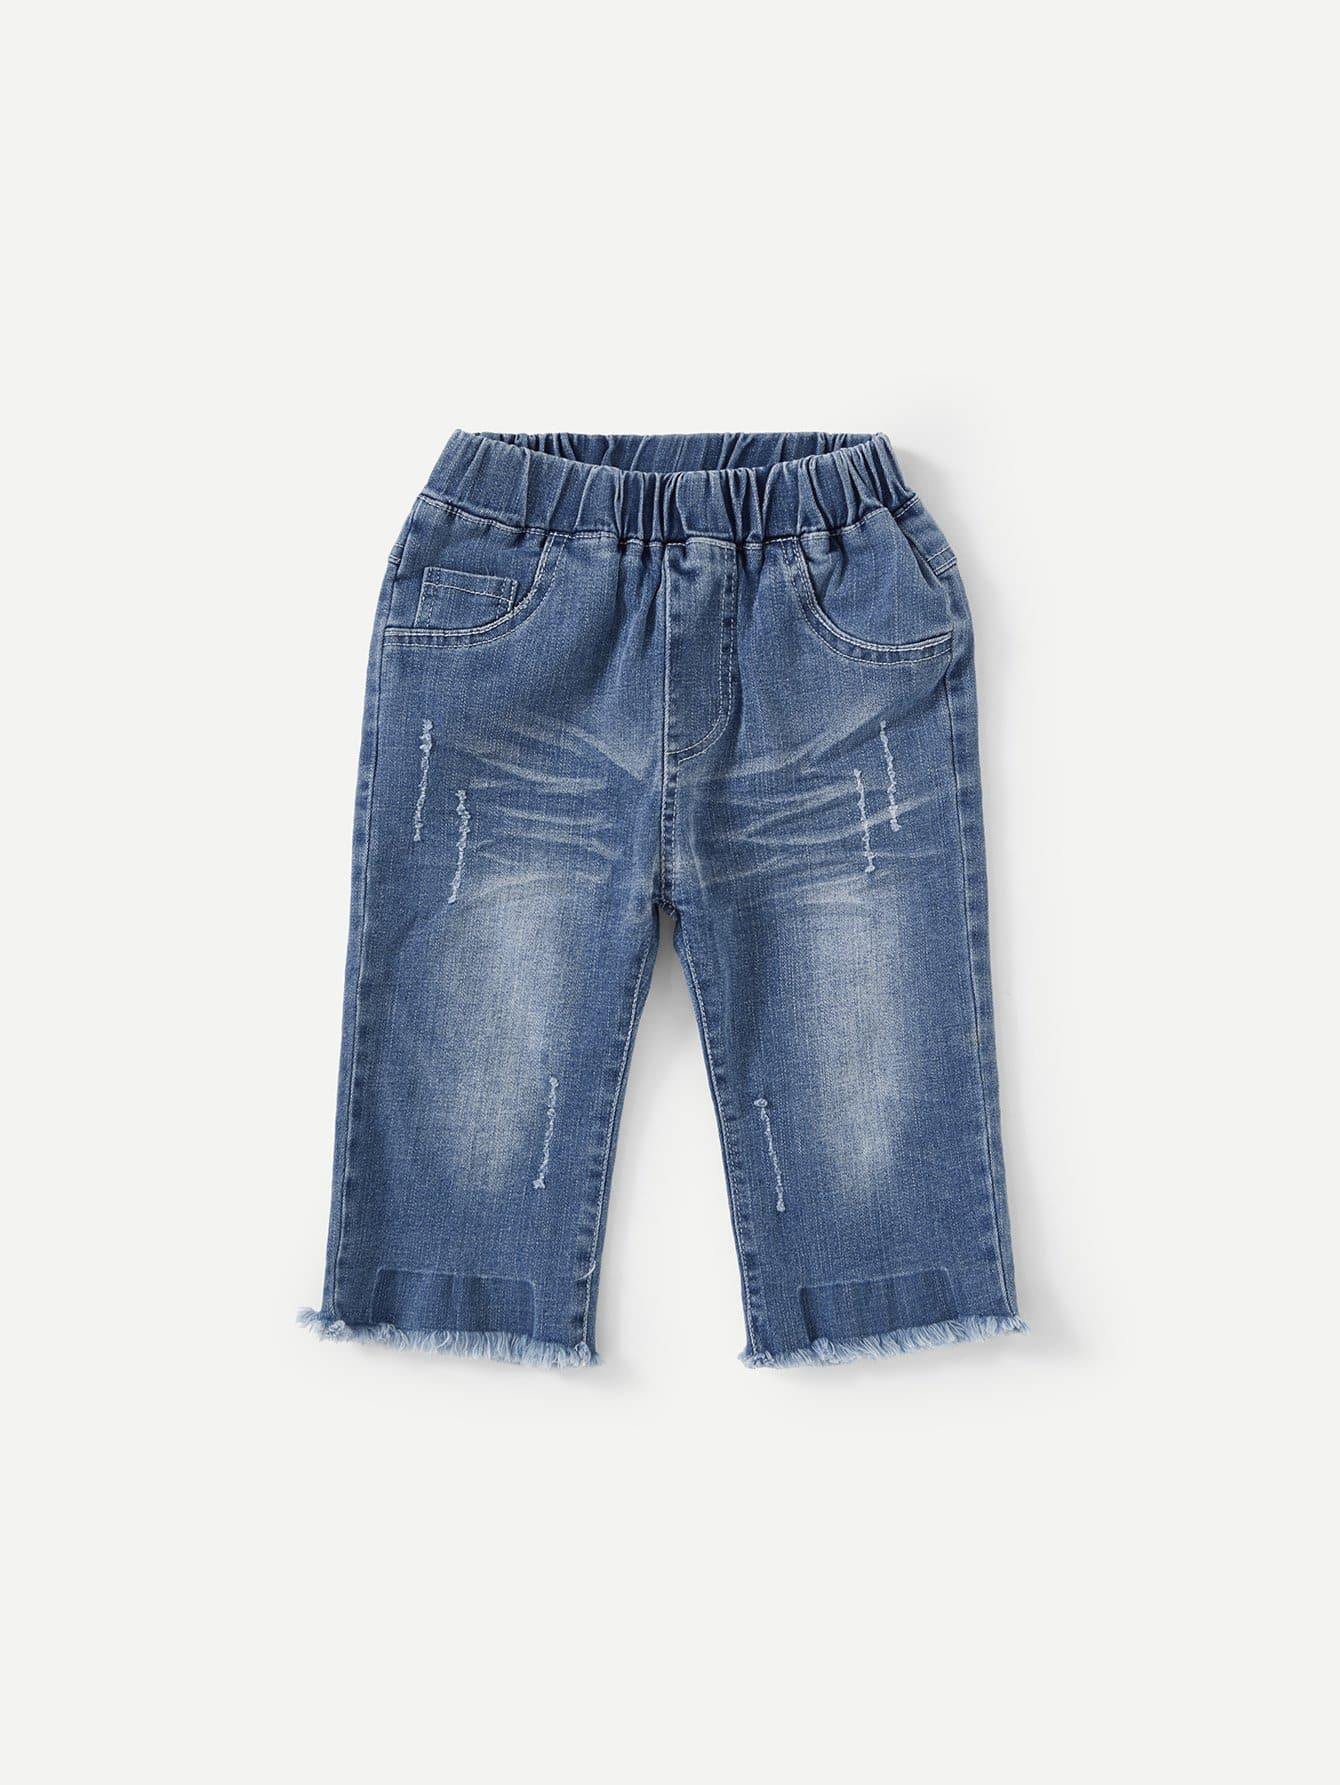 Boys Letter Print Rolled Hem Denim Shorts